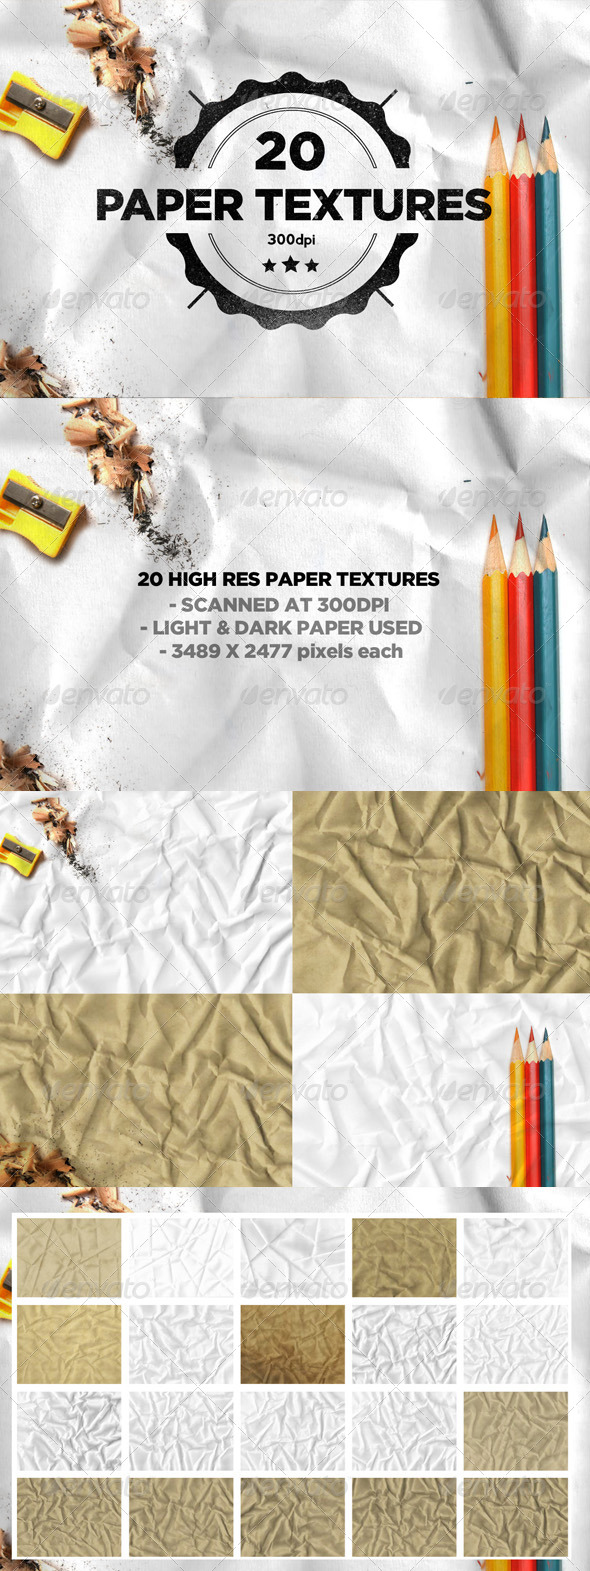 20 Folded Paper Textures - Paper Textures